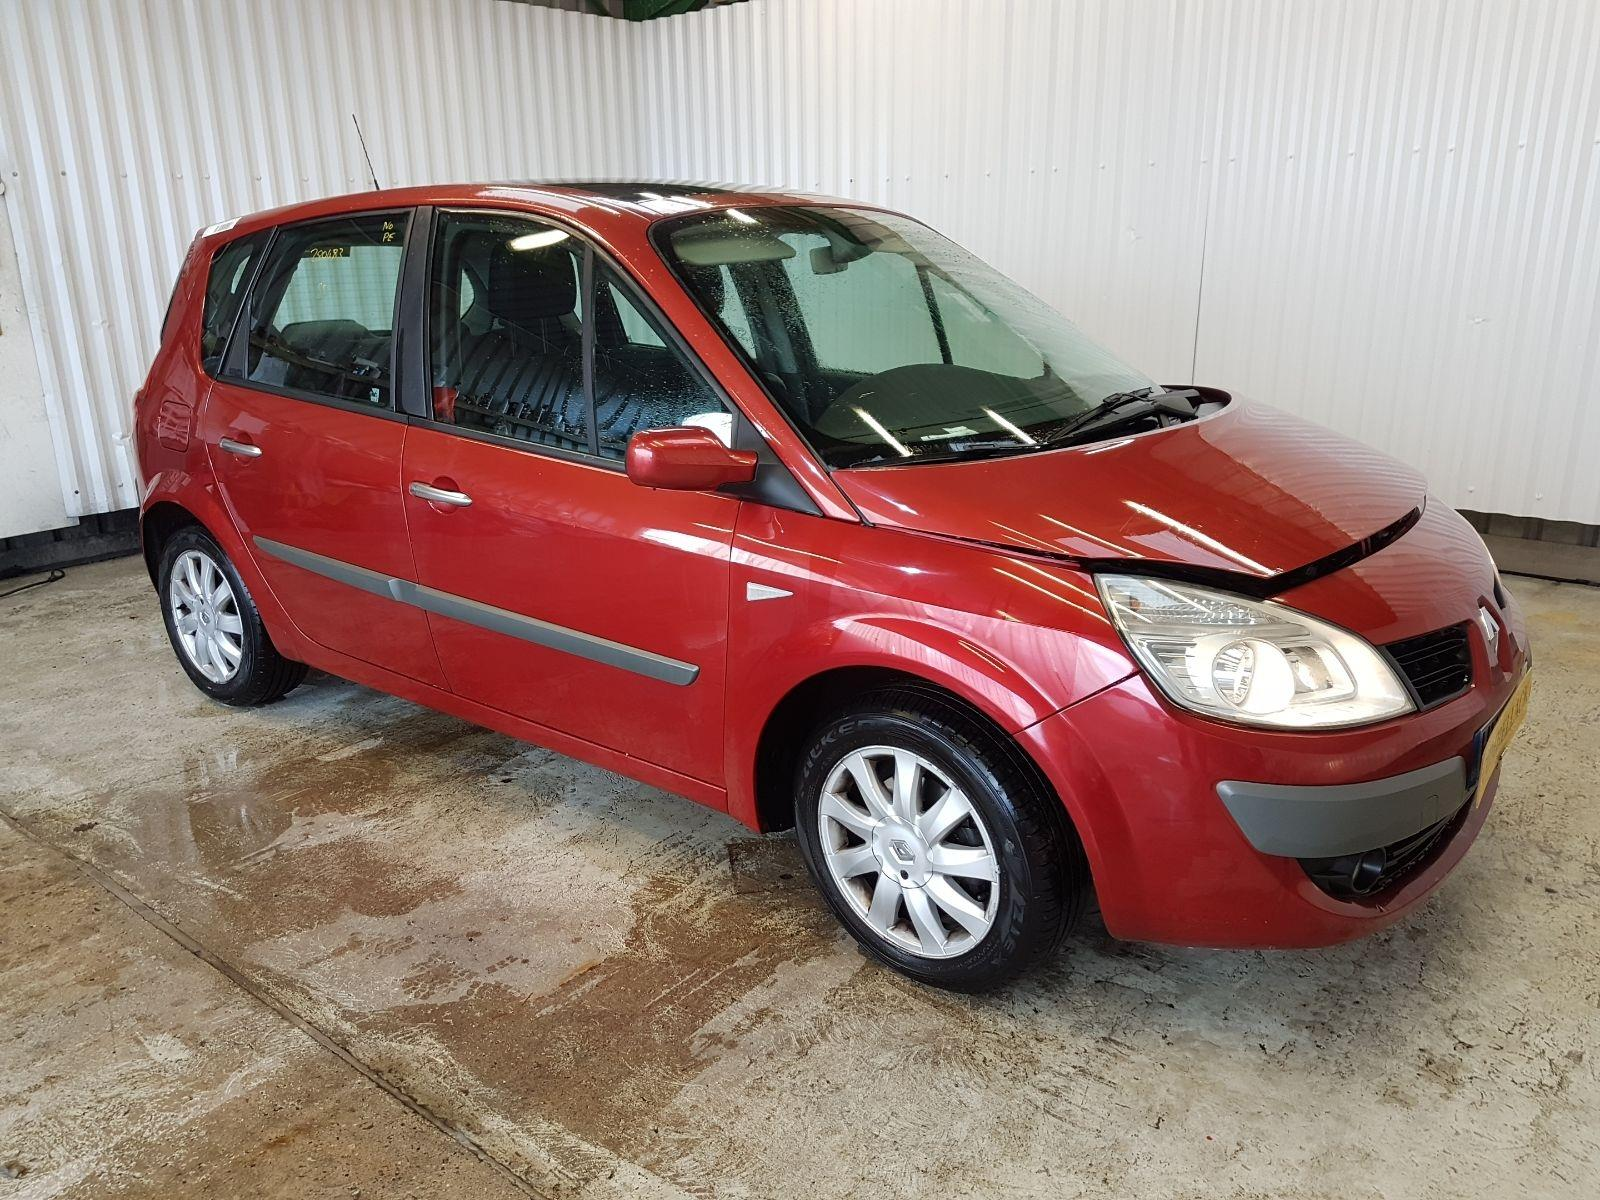 Renault Scenic 2003 To 2007 Dynamique dCi M.P.V.